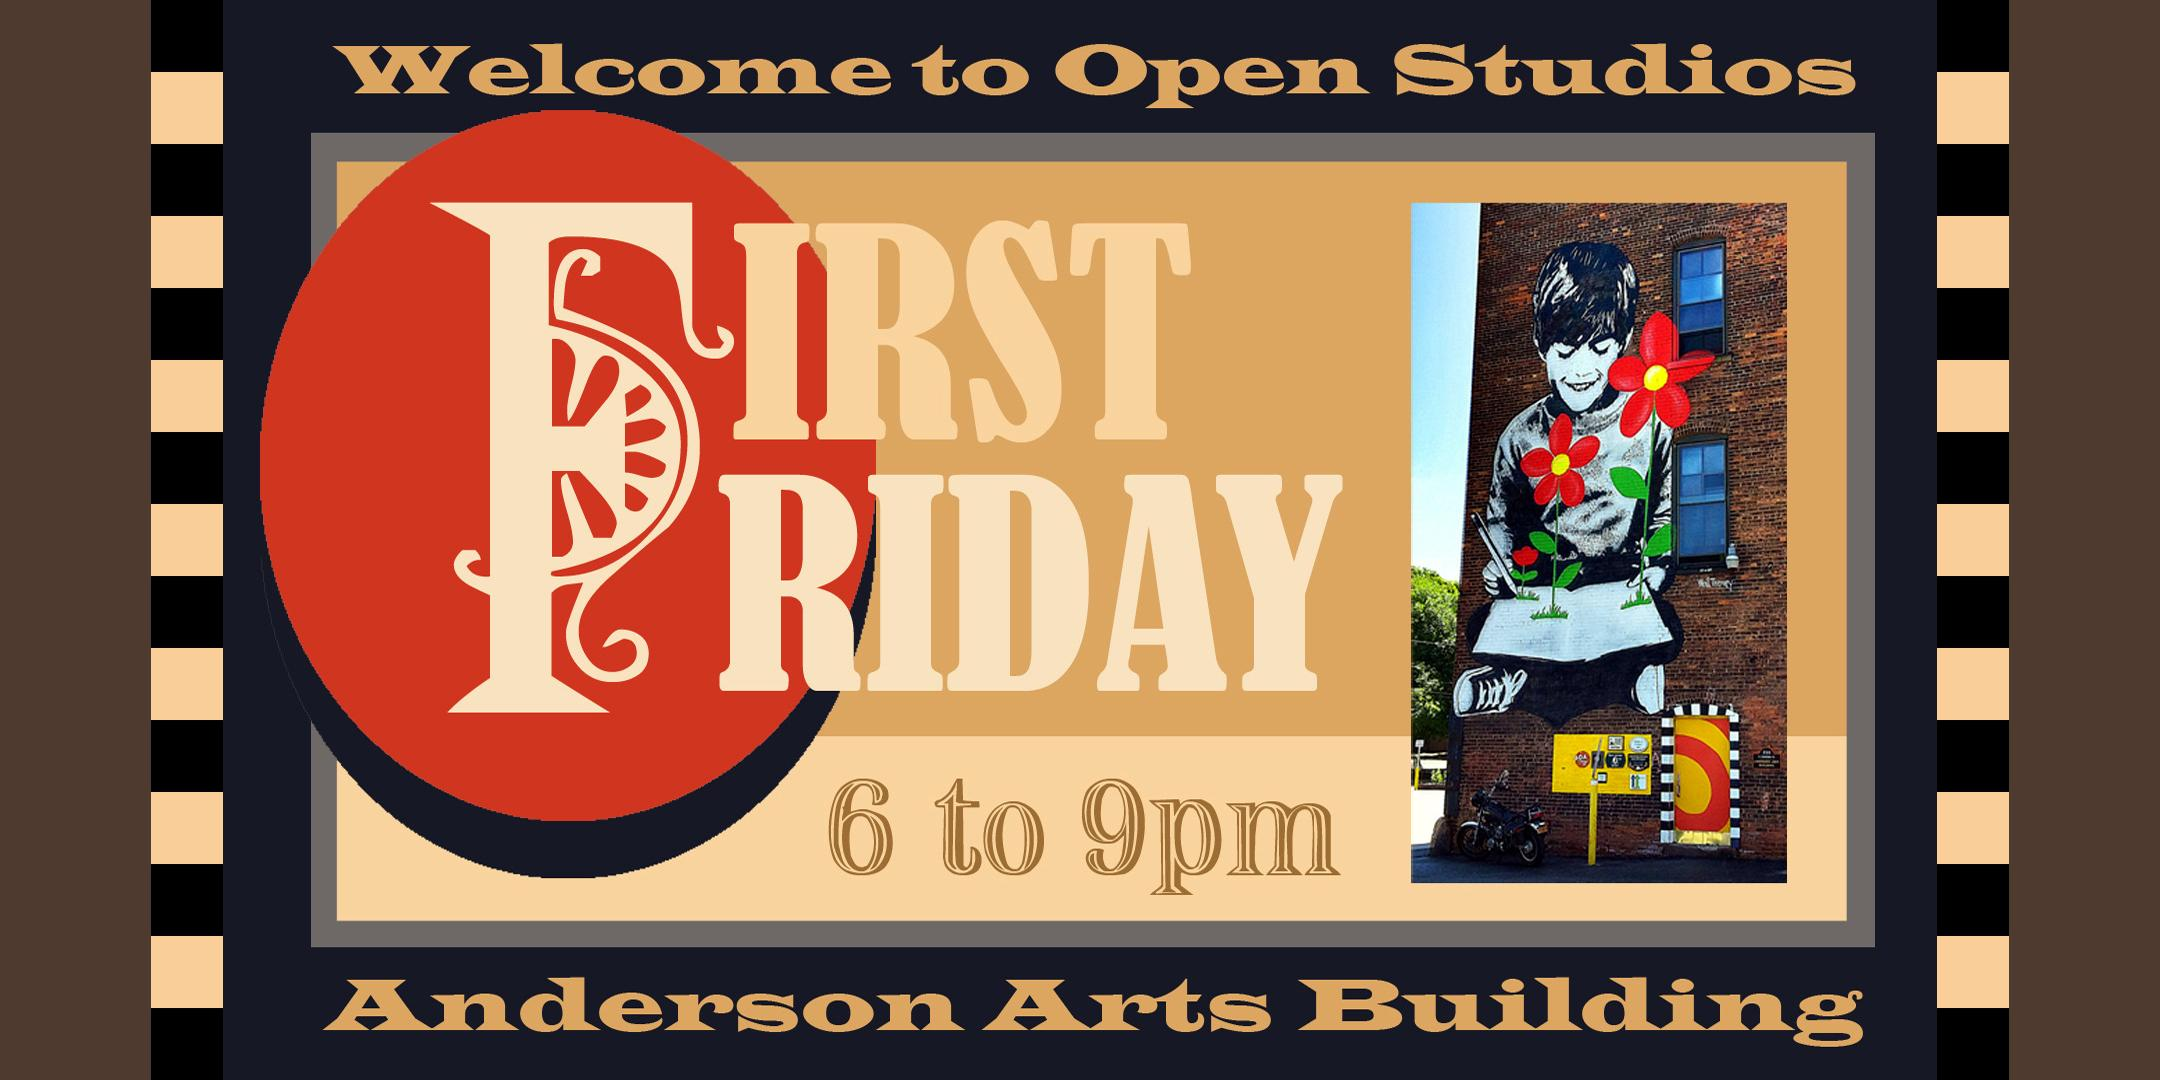 First Friday Open Studios 6-9pm